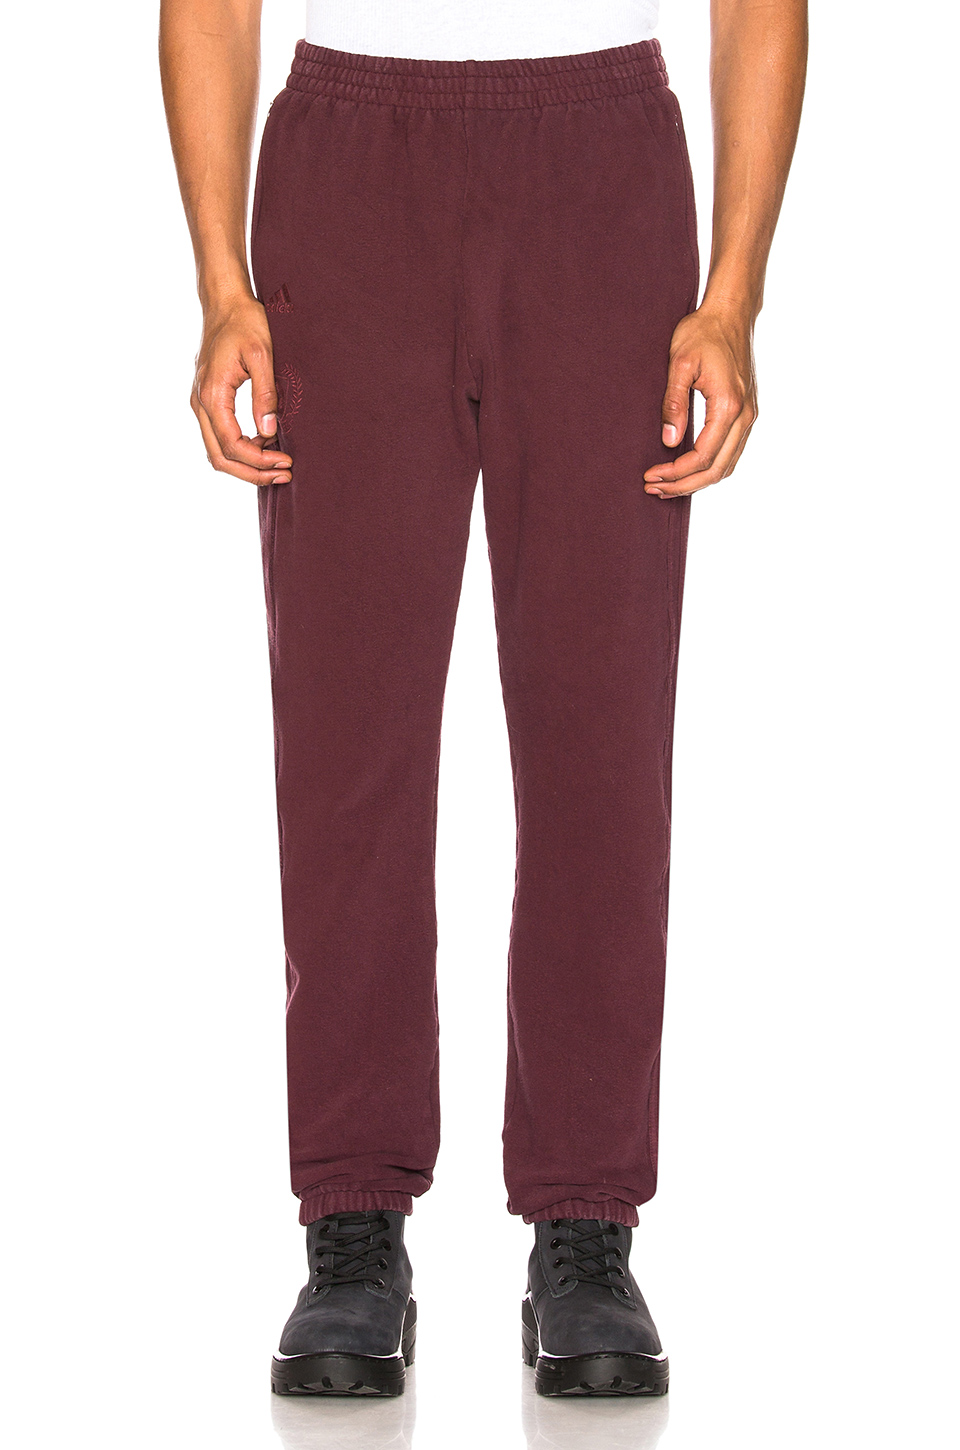 YEEZY Season 5 Calabasas Sweatpants in Oxblood